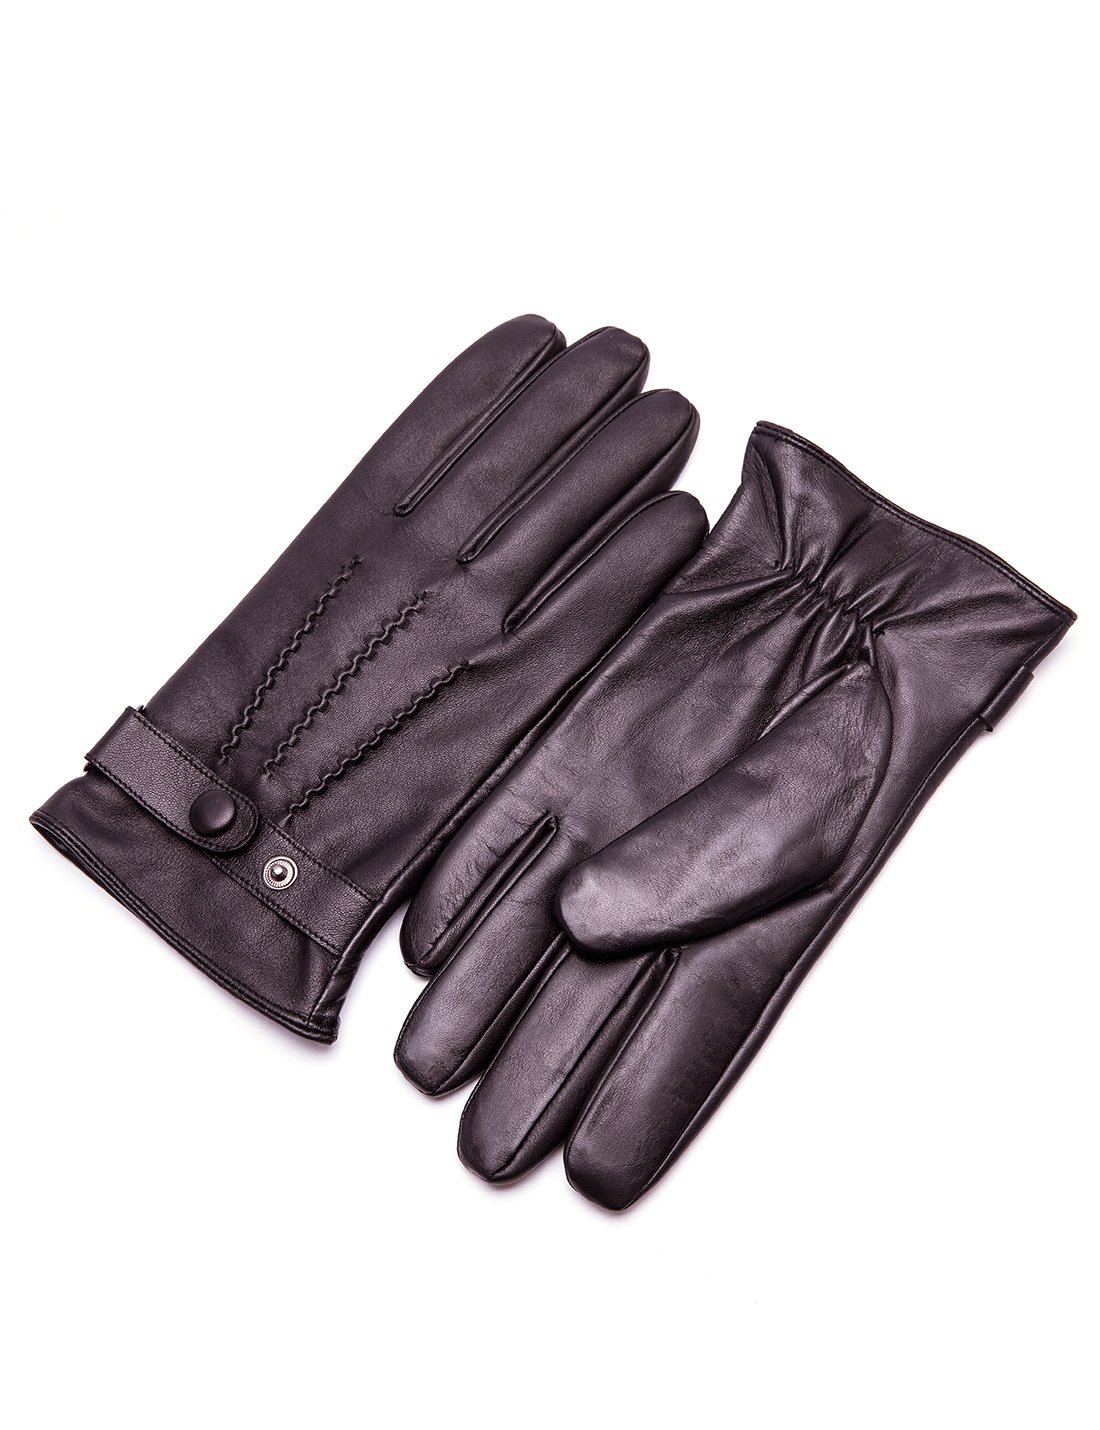 YISEVEN Men's Lambskin Leather Gloves Three Points Fleece Lined Luxury Slim and Real Natural Hand Real Natural Warm Fur Heated Lining for Winter Dress Driving Motorcycle Work Xmas Gifts, Brown 8.5''/S